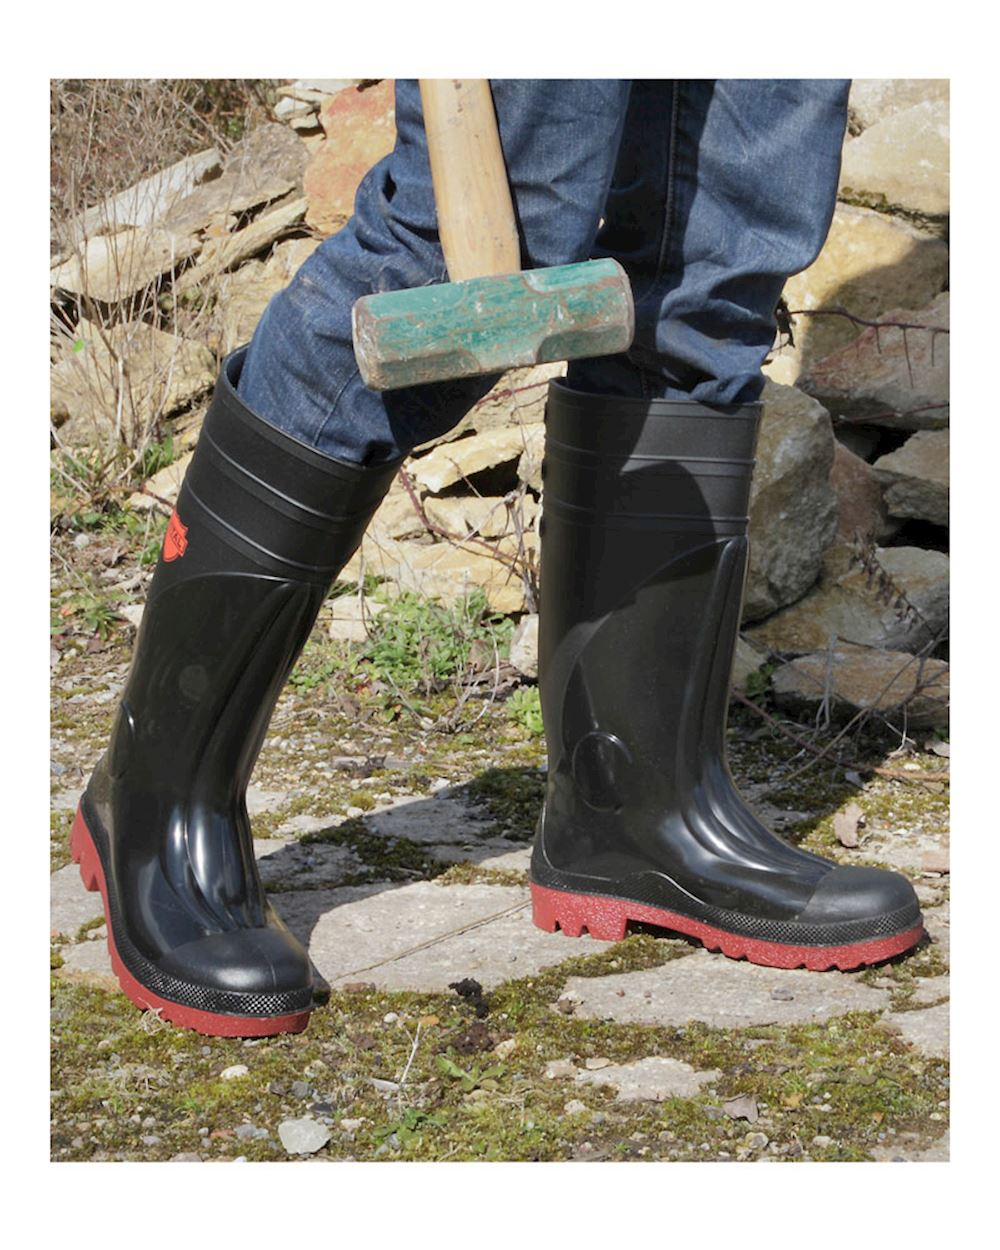 b15b089f3be Size 14 And Size 15 Safety Welly With Midsole - Sitemaster